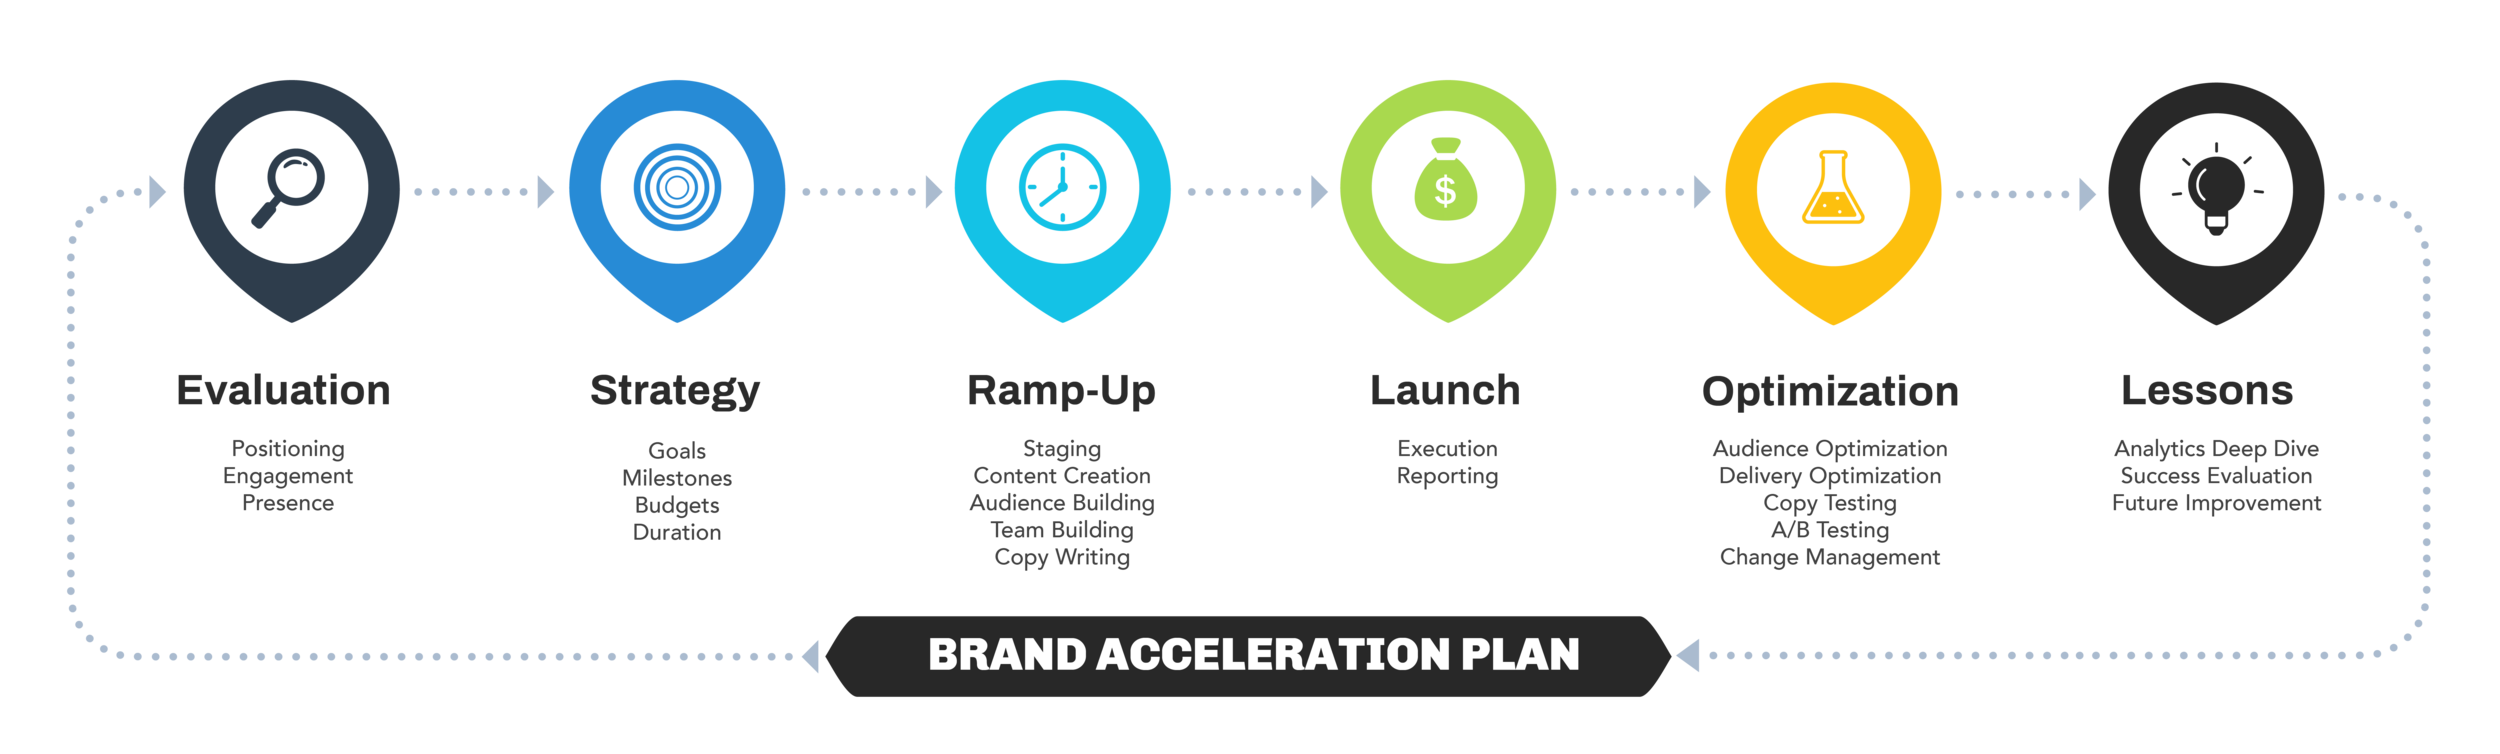 Brand Acceleration Process.png